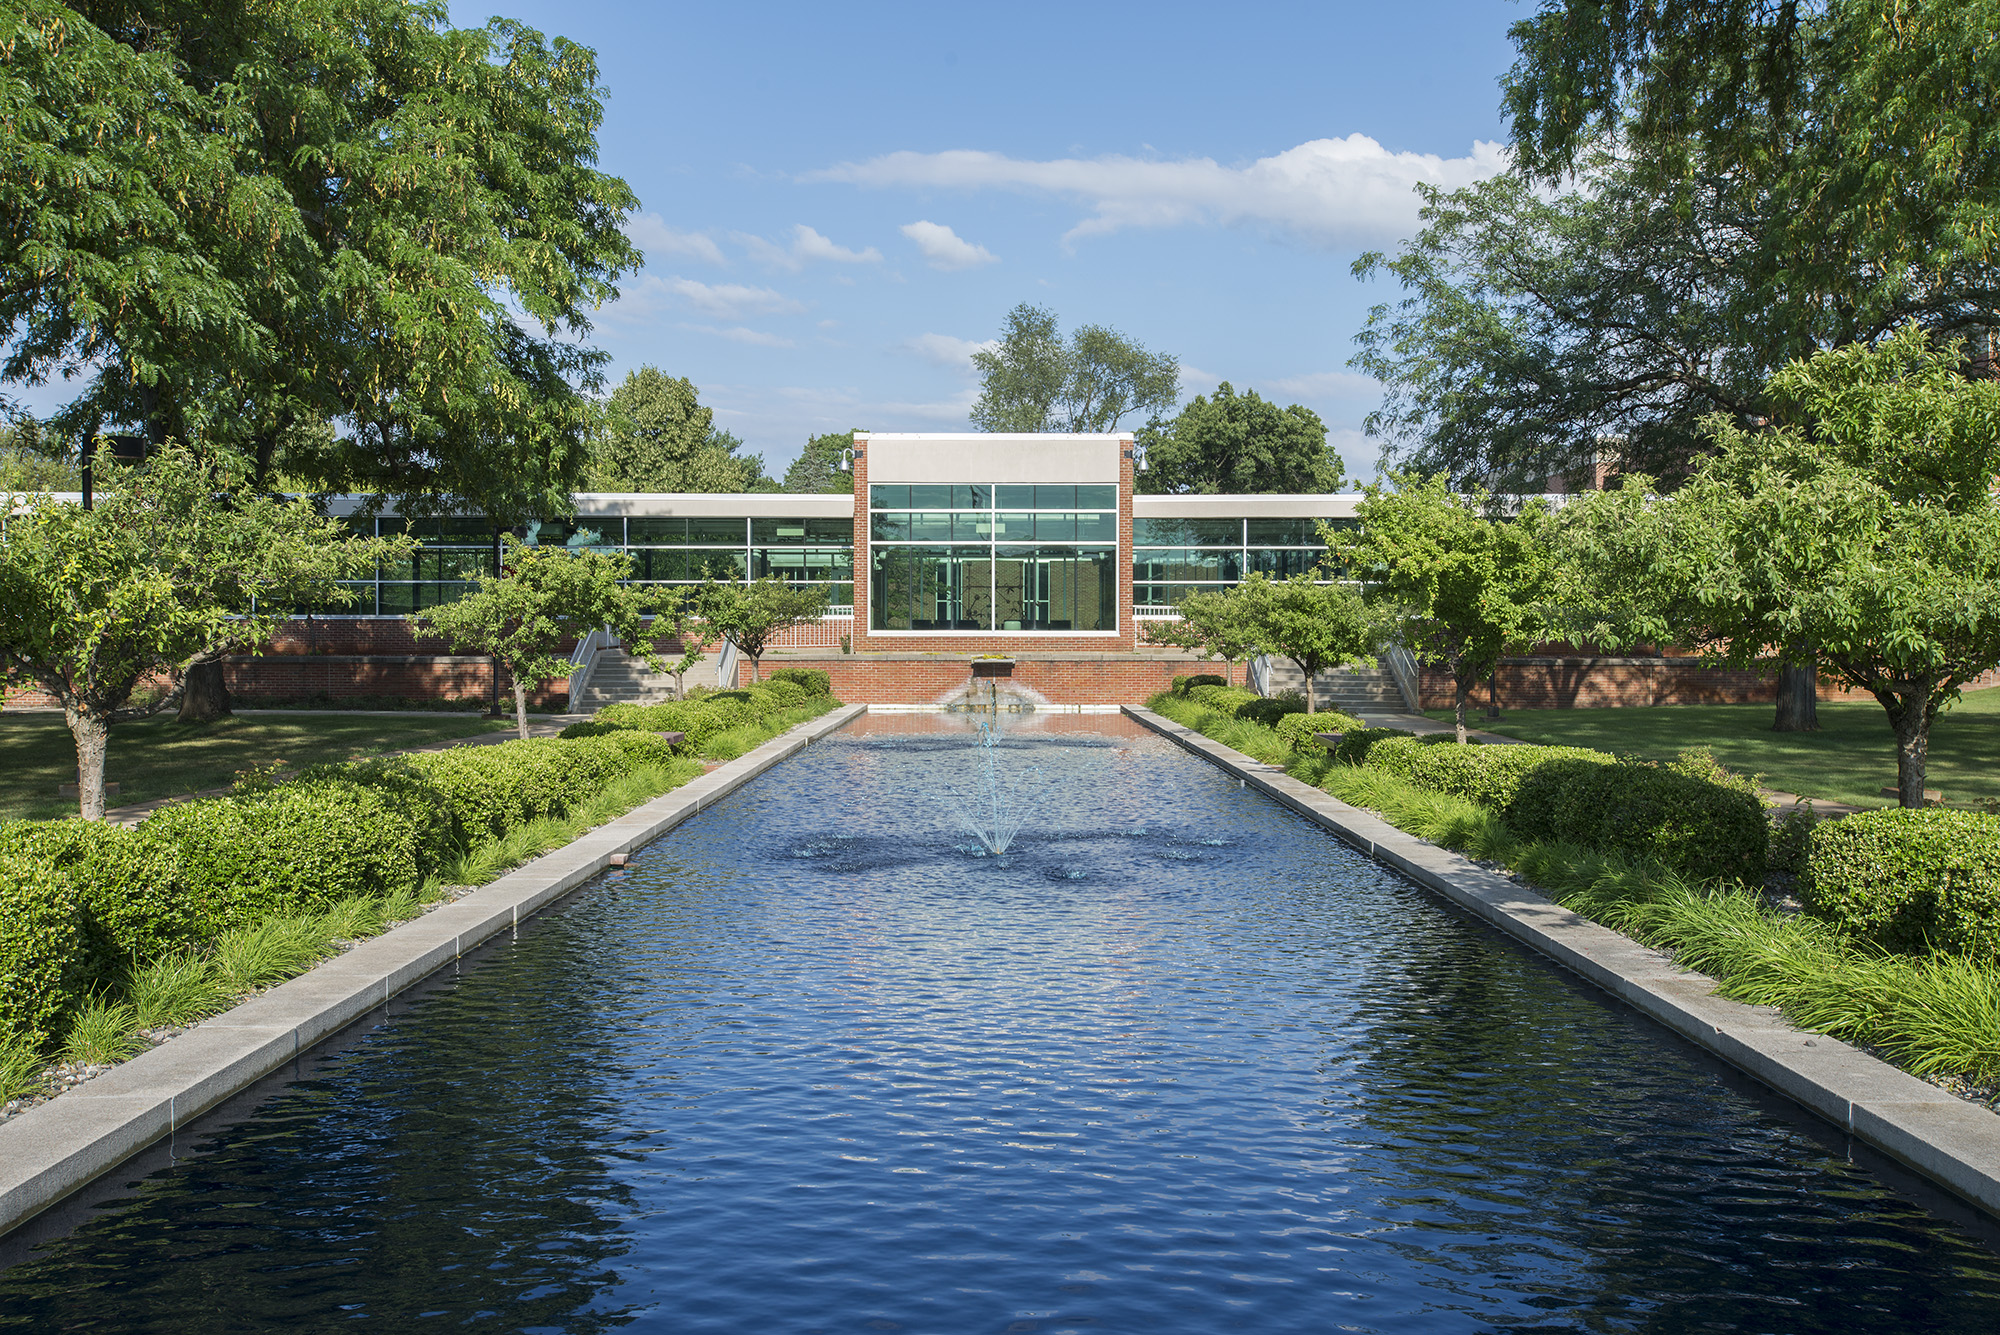 An exterior view of the entrance to KCC's North Avenue campus looking over the reflecting pools.